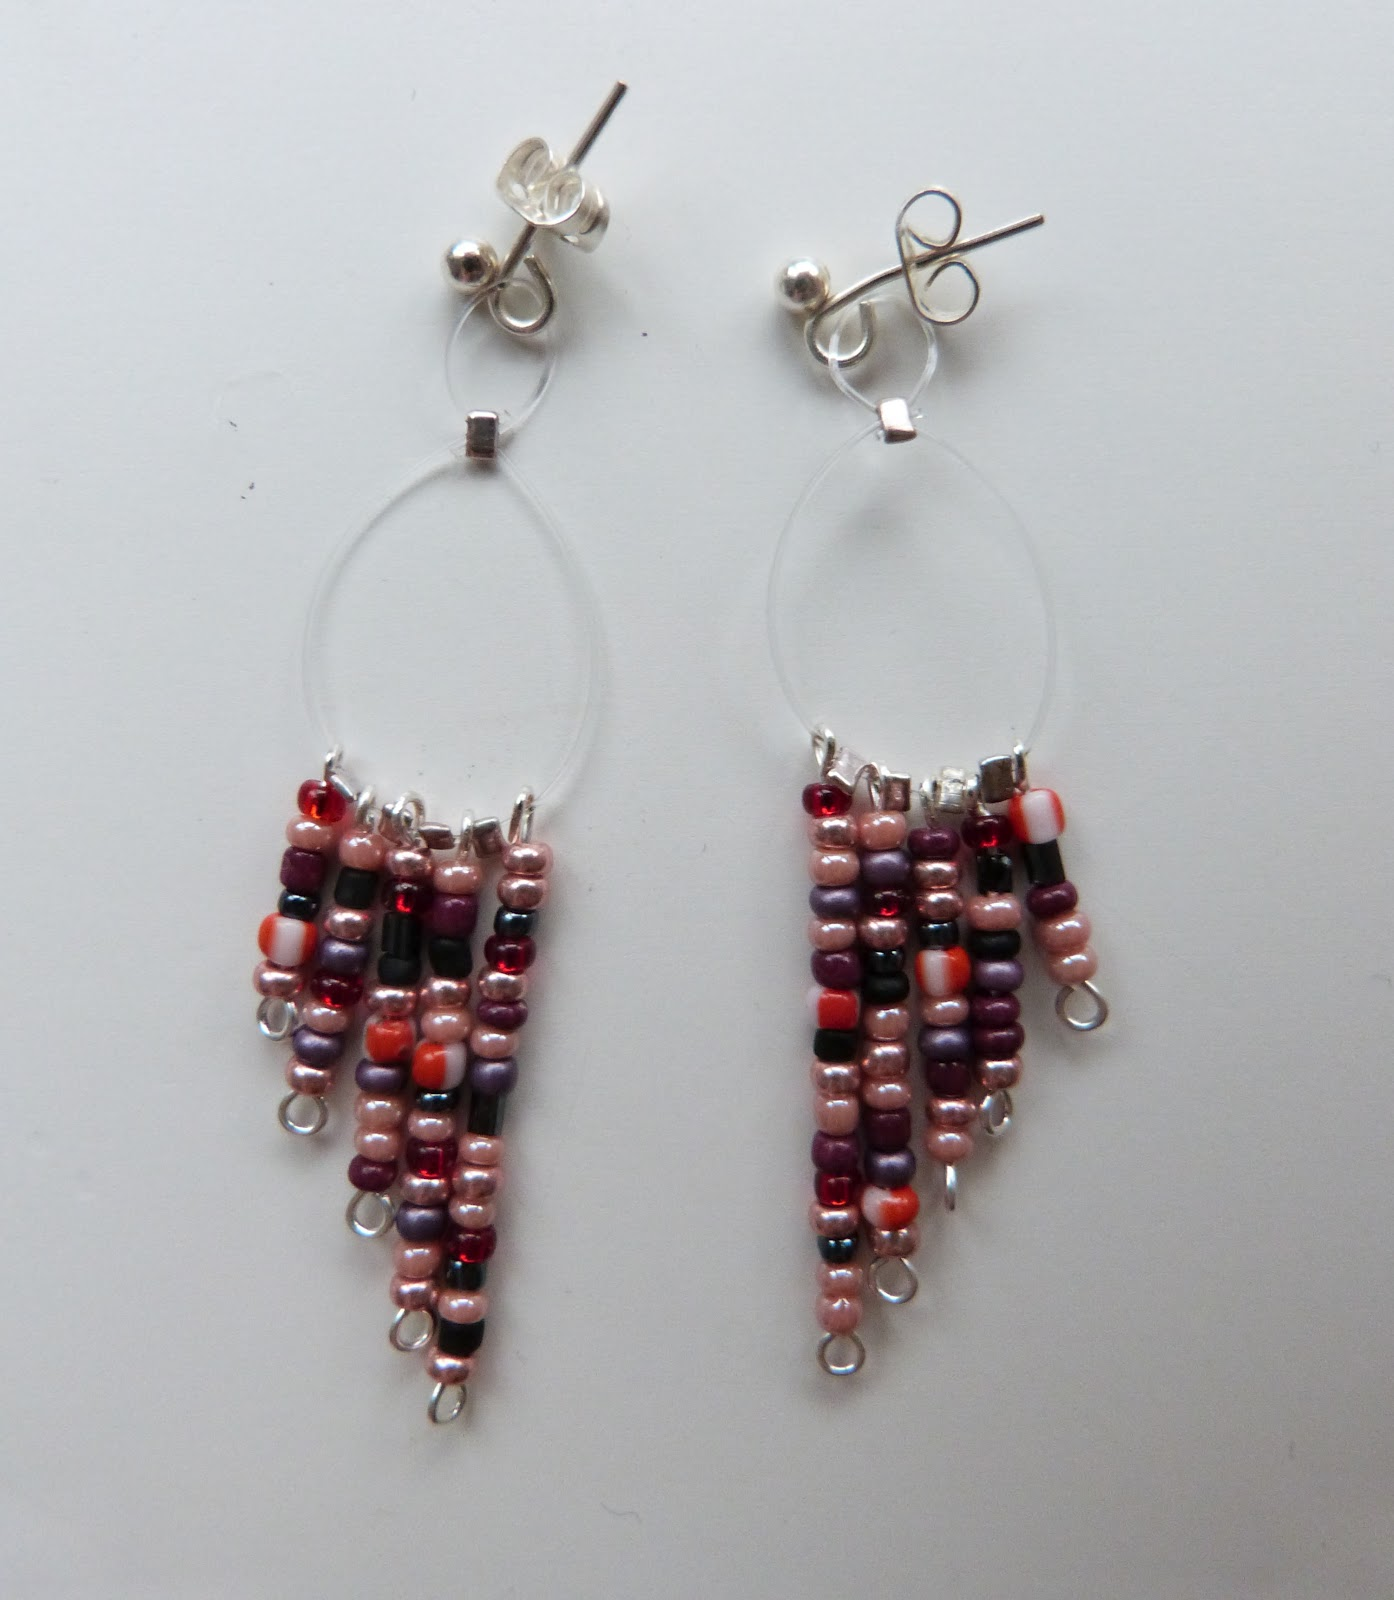 Trends With Benefits: DIY Beaded Earrings